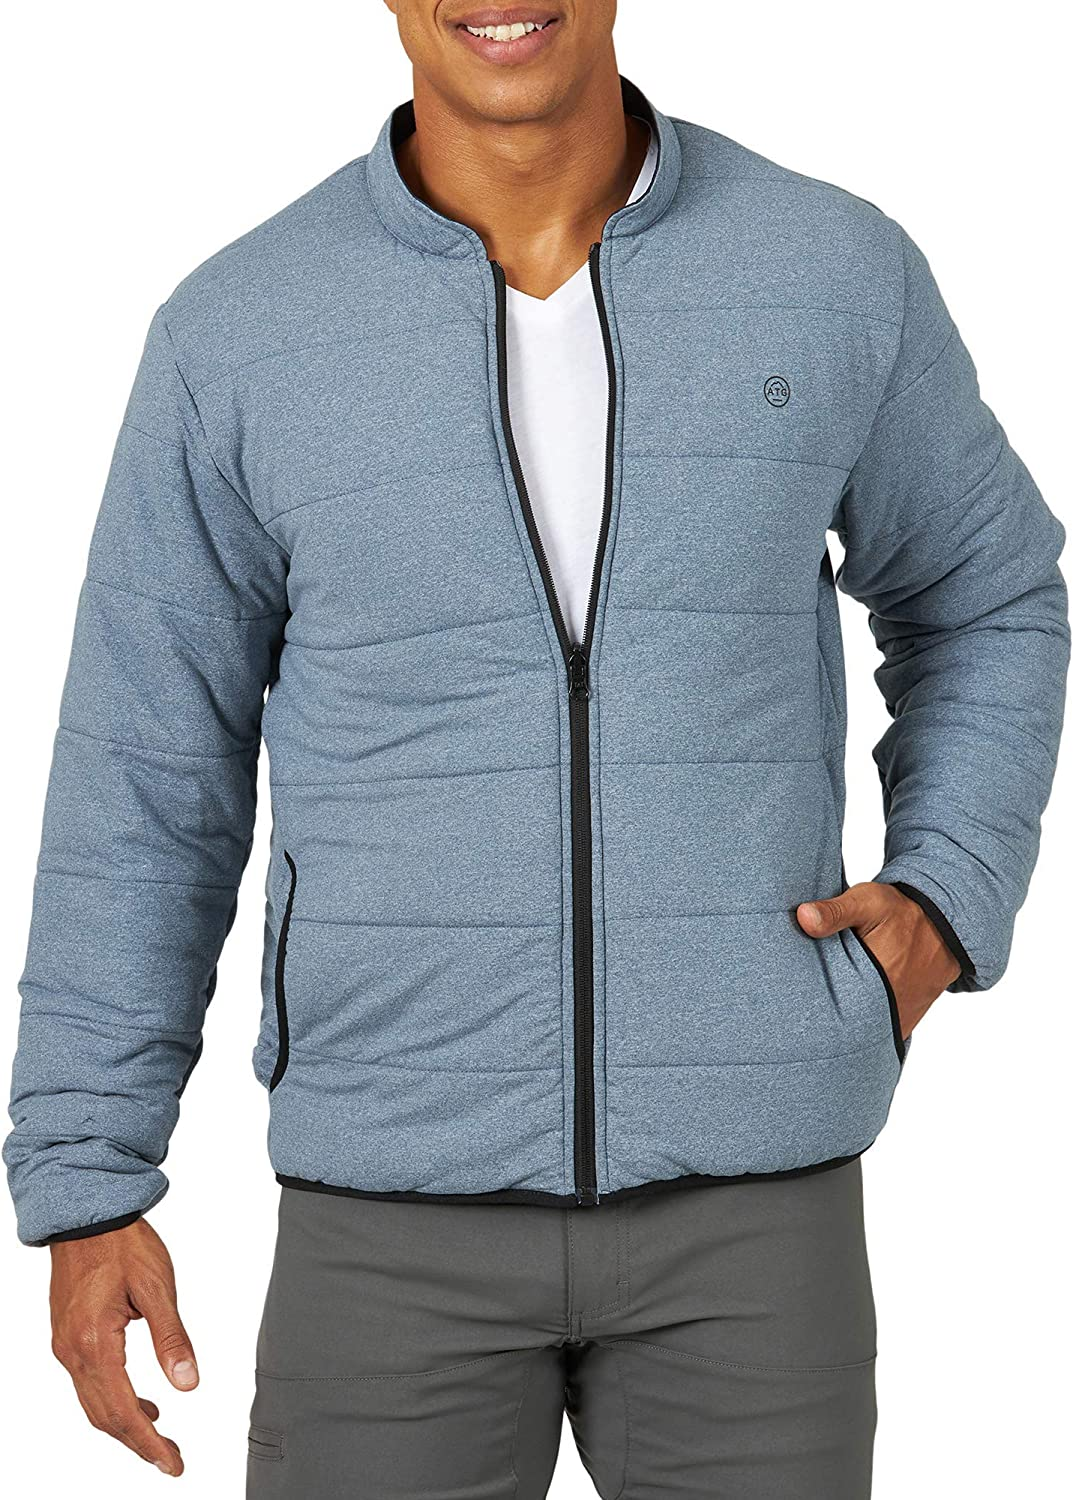 ATG by Wrangler Mens Reversible Classic Jacket